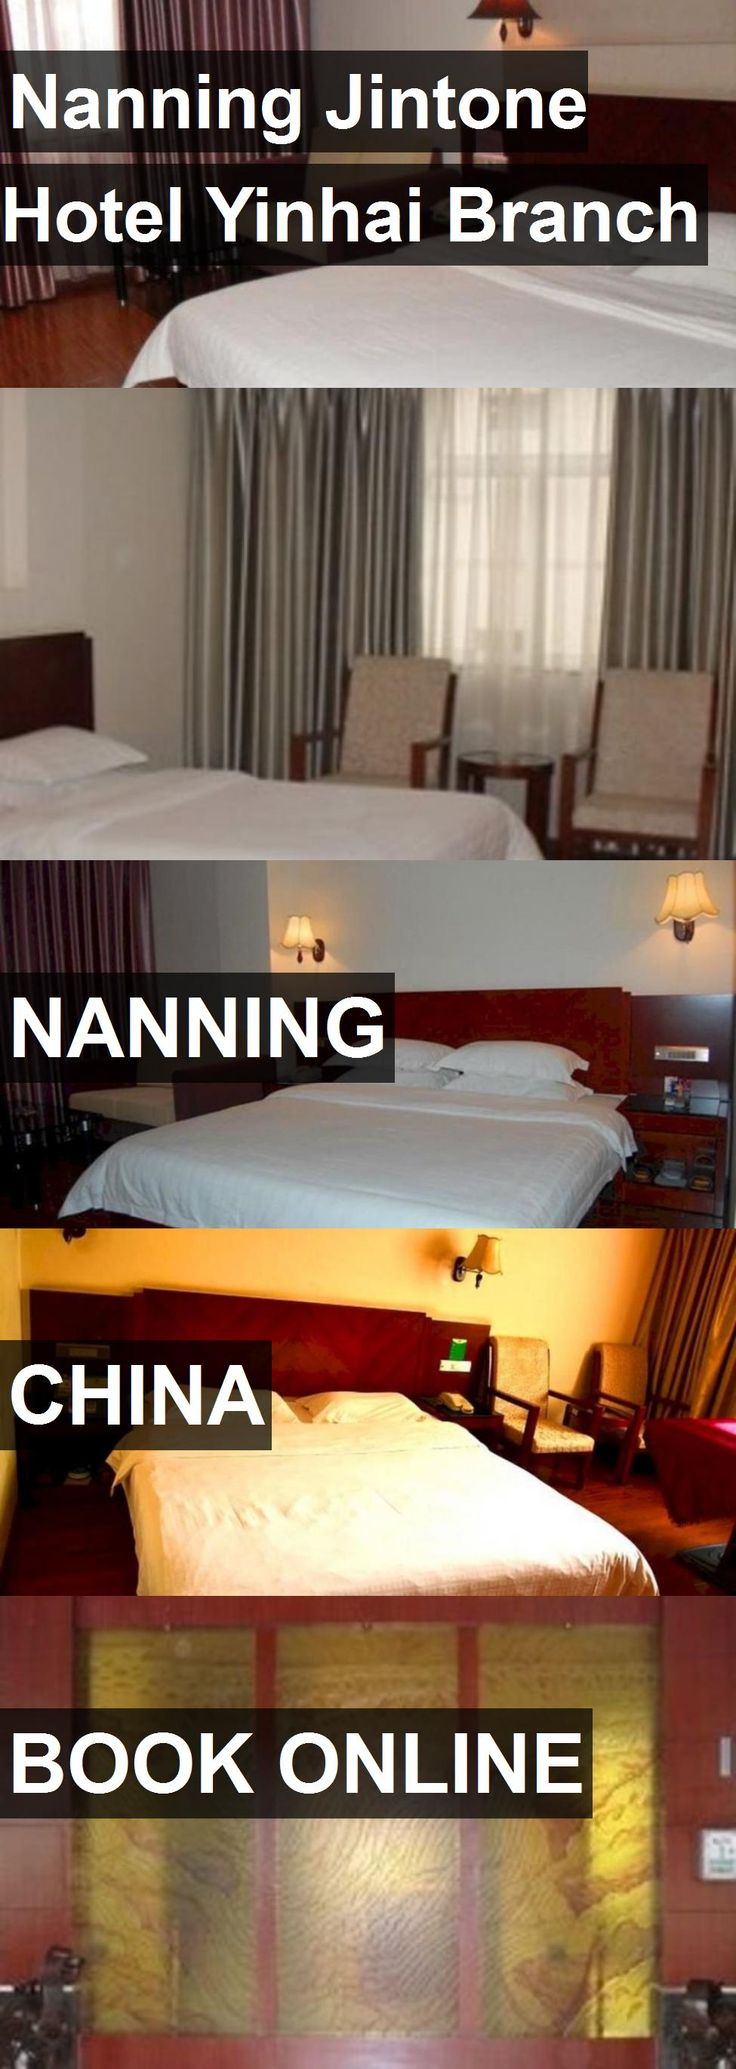 Hotel Nanning Jintone Hotel Yinhai Branch in Nanning, China. For more information, photos, reviews and best prices please follow the link. #China #Nanning #NanningJintoneHotelYinhaiBranch #hotel #travel #vacation